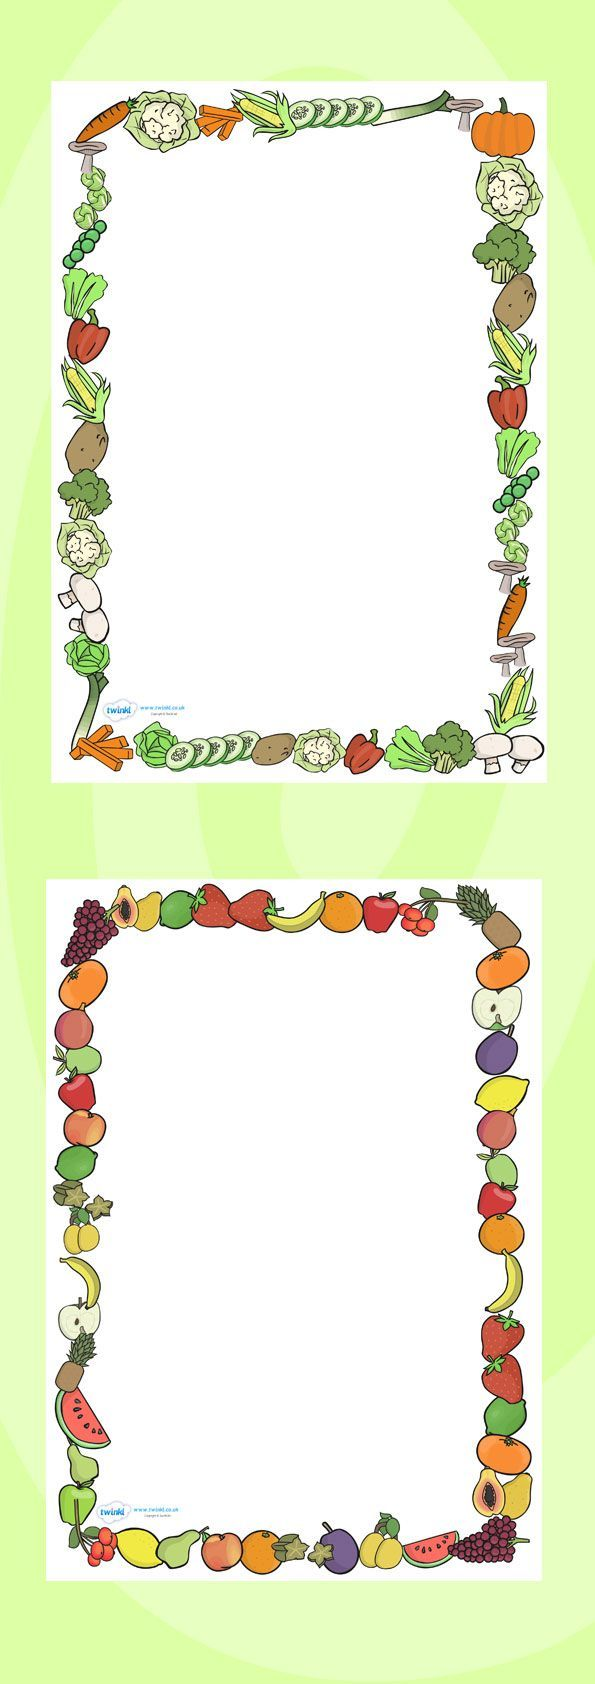 Twinkl Resources >> Fruit and Vegetables Themed A4 Page Borders ...